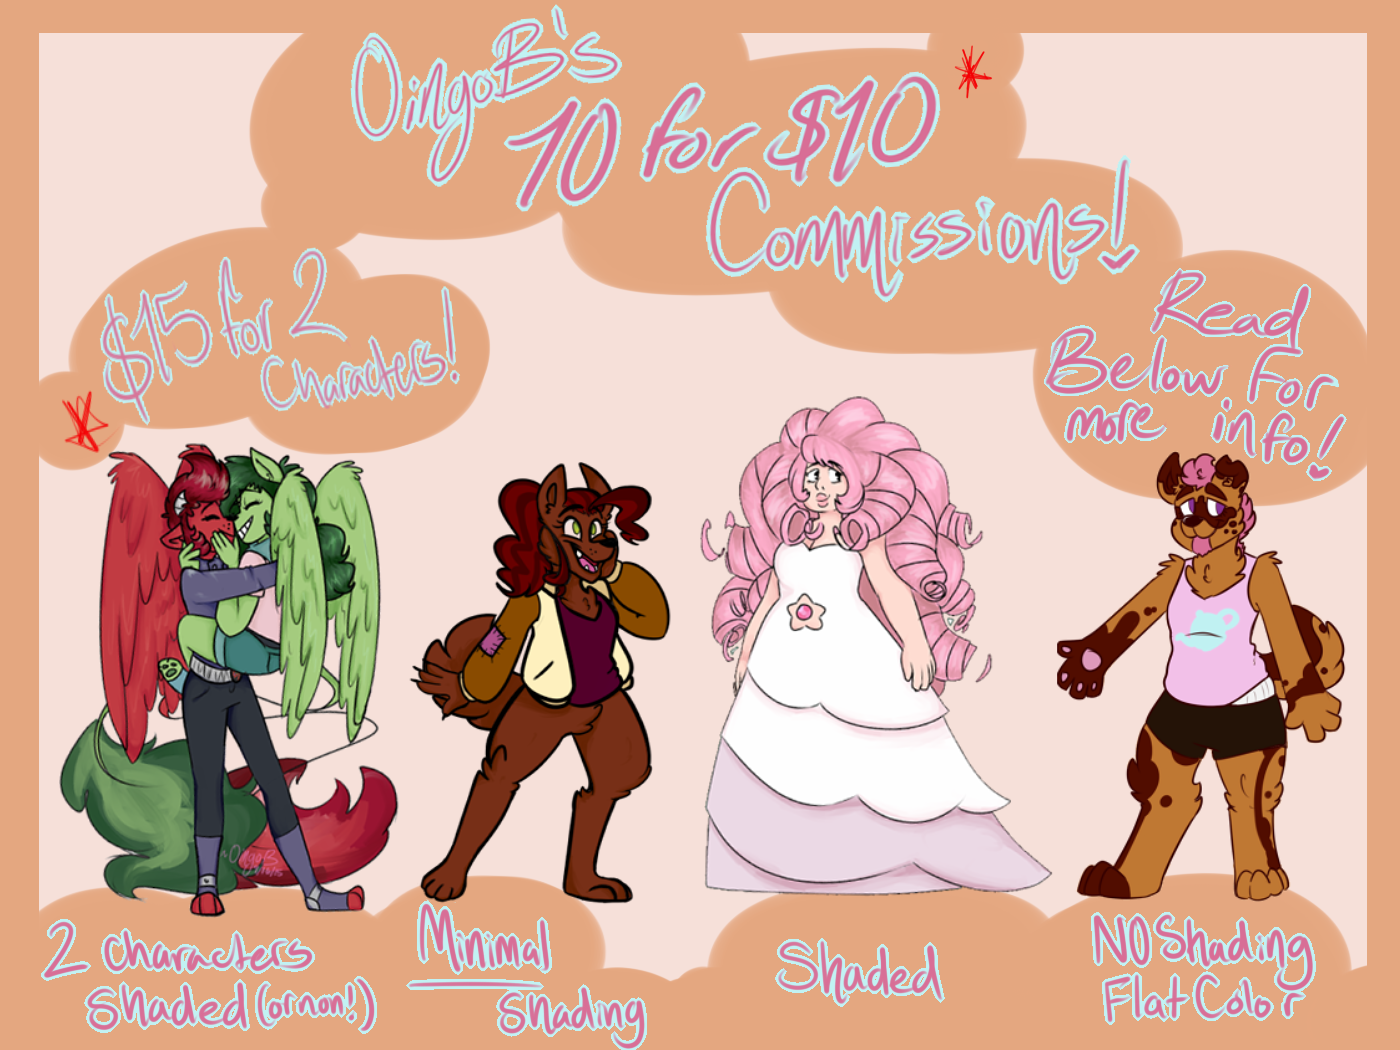 OingoB's 10 for $10 Commissions! by OingoB